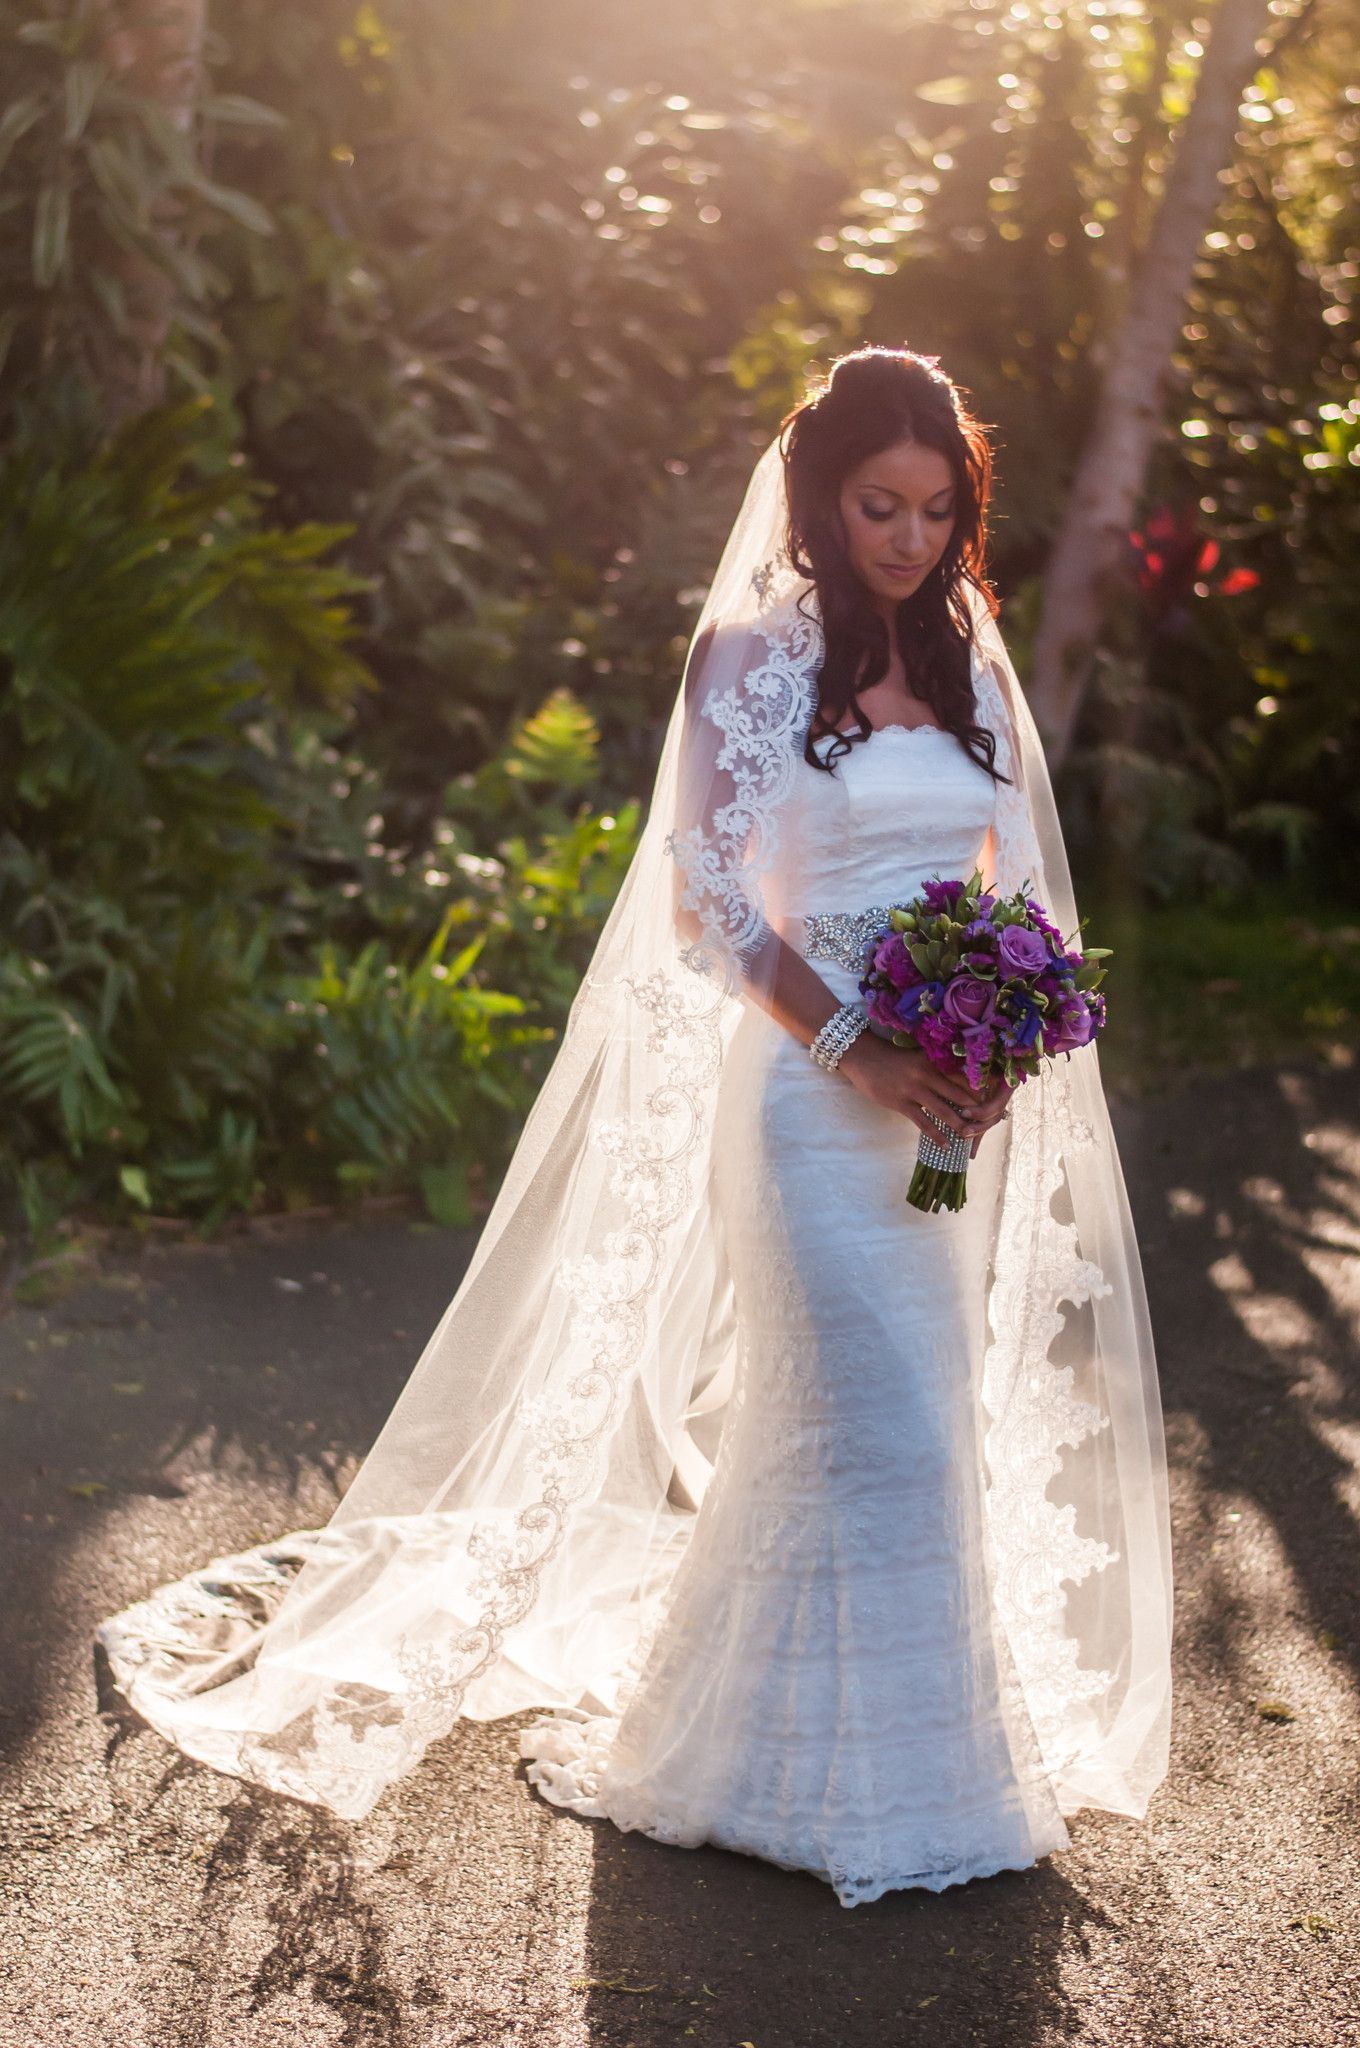 A bride poses before her wedding in makena maui hawaii wedding